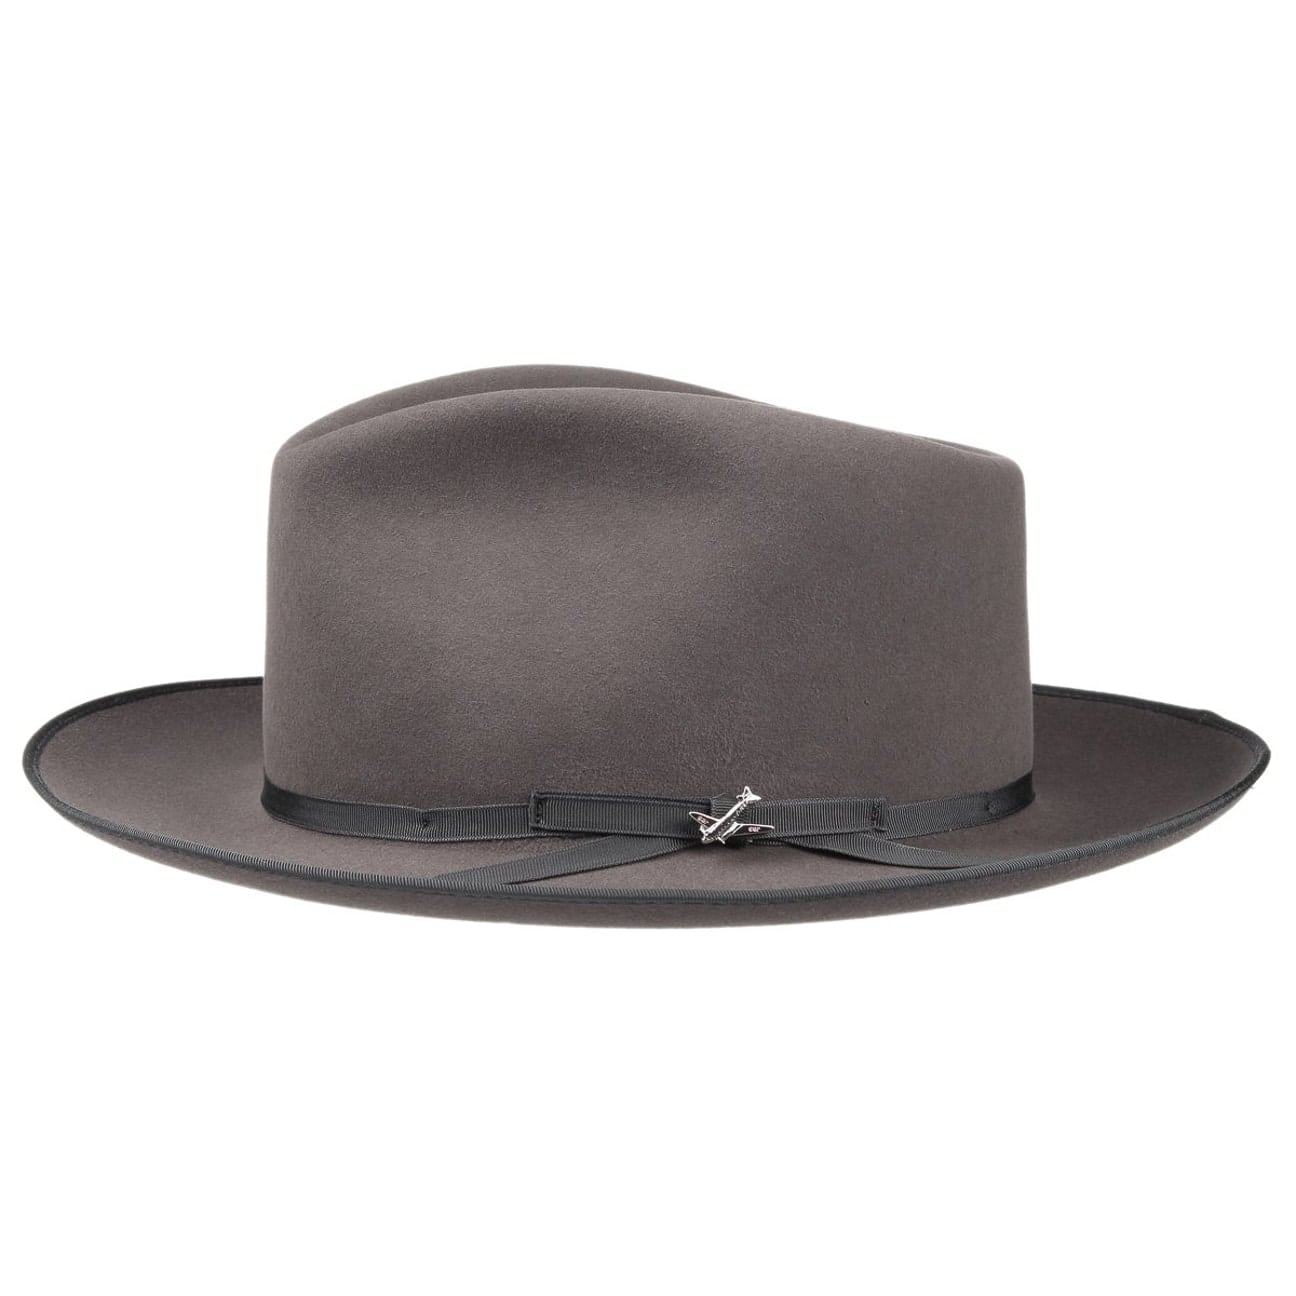 30158e52133aac ... Stratoliner Fur Felt Hat by Stetson - dark brown 6 ...